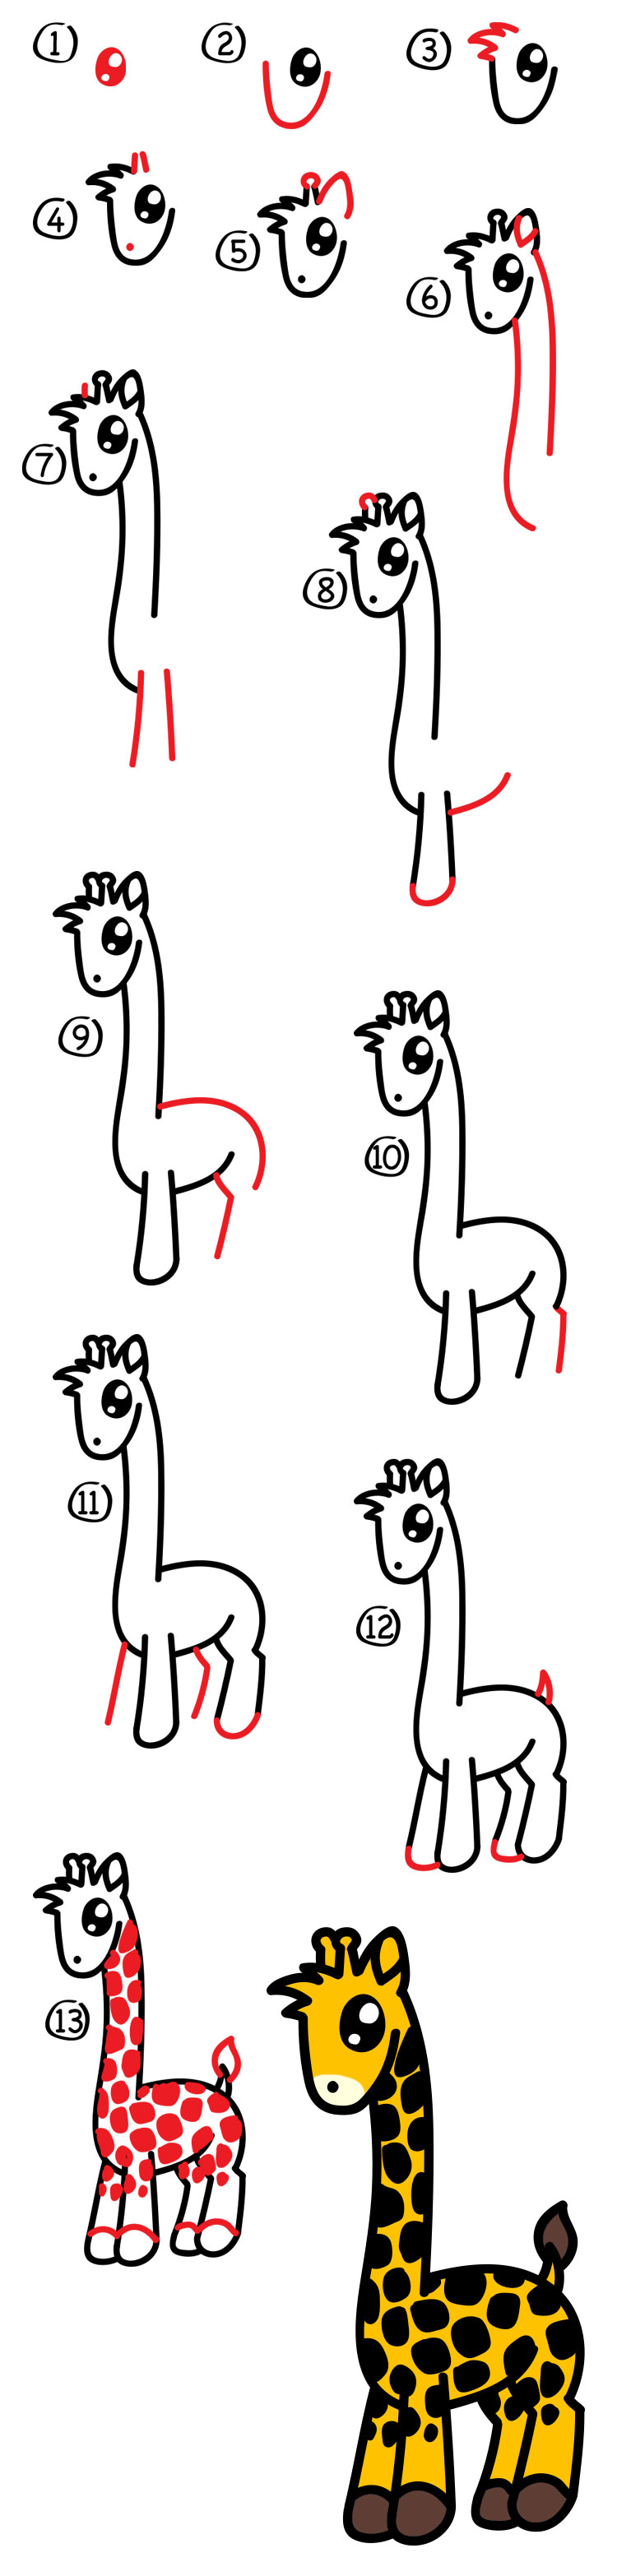 How To Draw A Giraffe For Kids Step By Step